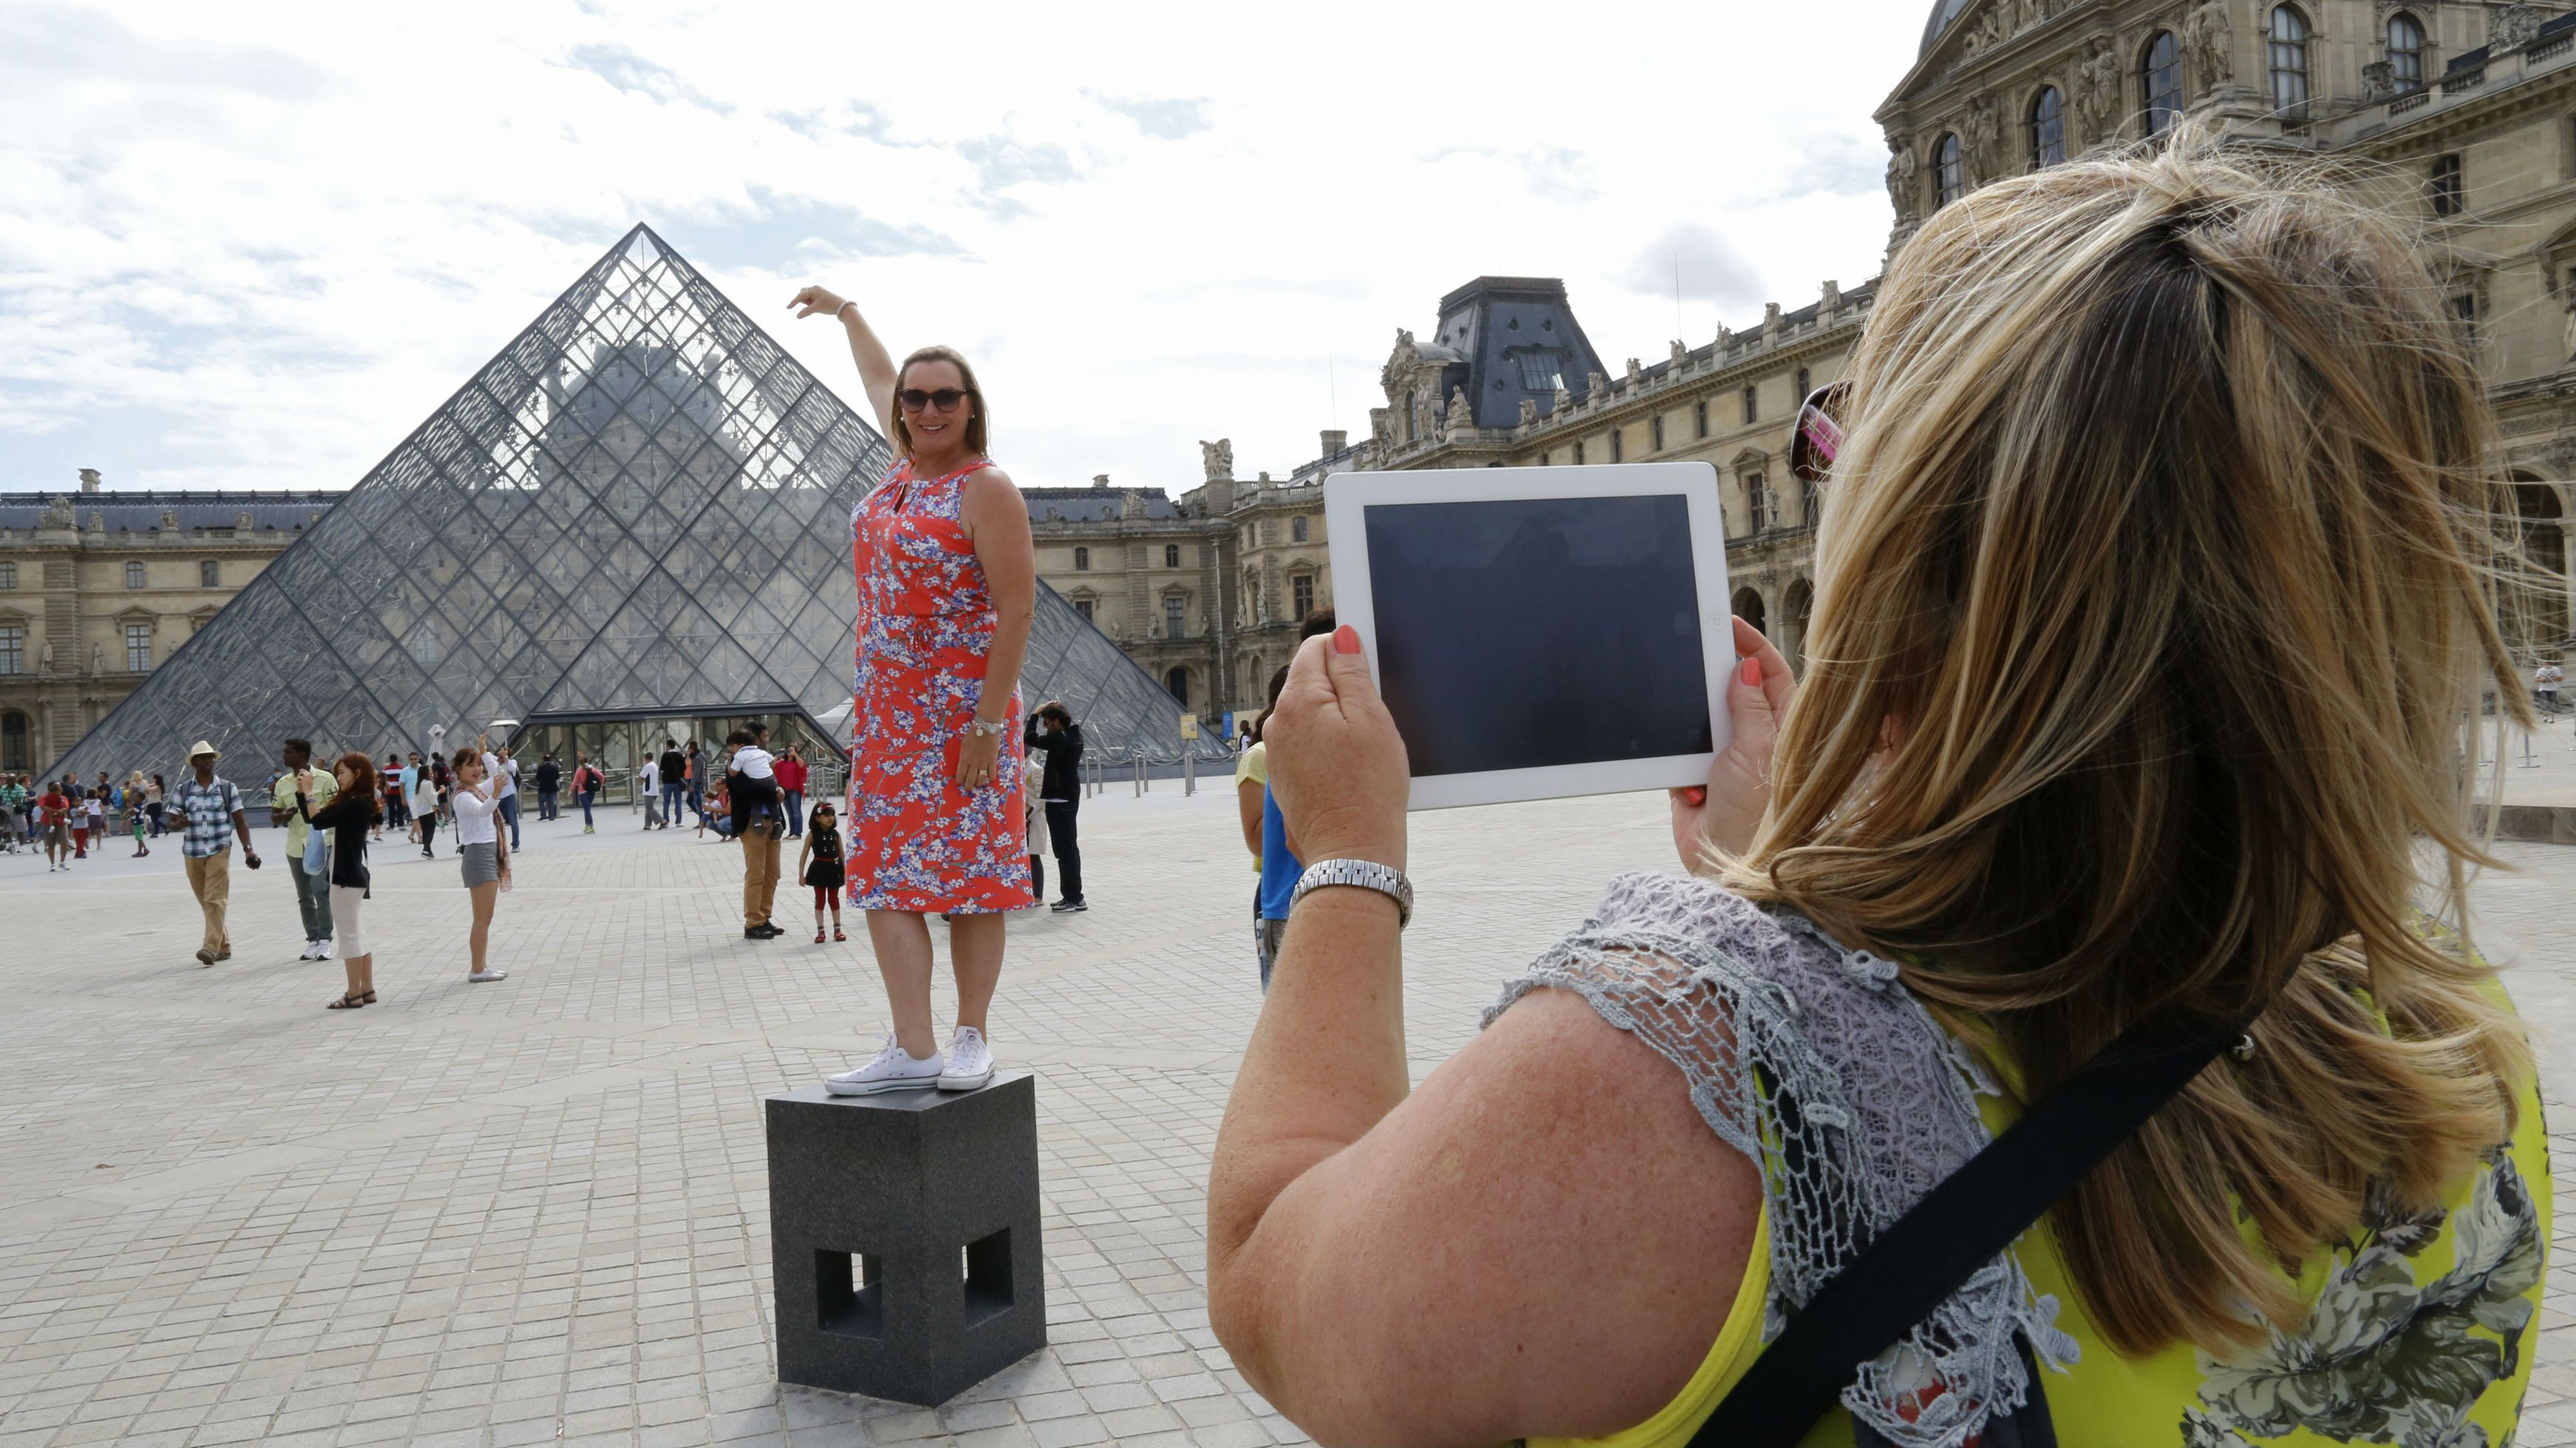 A tourist poses for a souvenir picture near the Pyramid of the Louvre Museum in Paris, August 12, 2014. France kept its title as the world's top tourist destination in 2013, drawing nearly 85 million visitors despite a lacklustre economic situation as Chinese interest intensified and North Americans surged back to the country. With its Mediterranean beaches and skiable mountain ranges, rich architectural heritage and tourist attractions France grew even more popular last year, welcoming 2 percent more visitors than in 2012. REUTERS/Jacky Naegelen (FRANCE - Tags: TRAVEL BUSINESS)